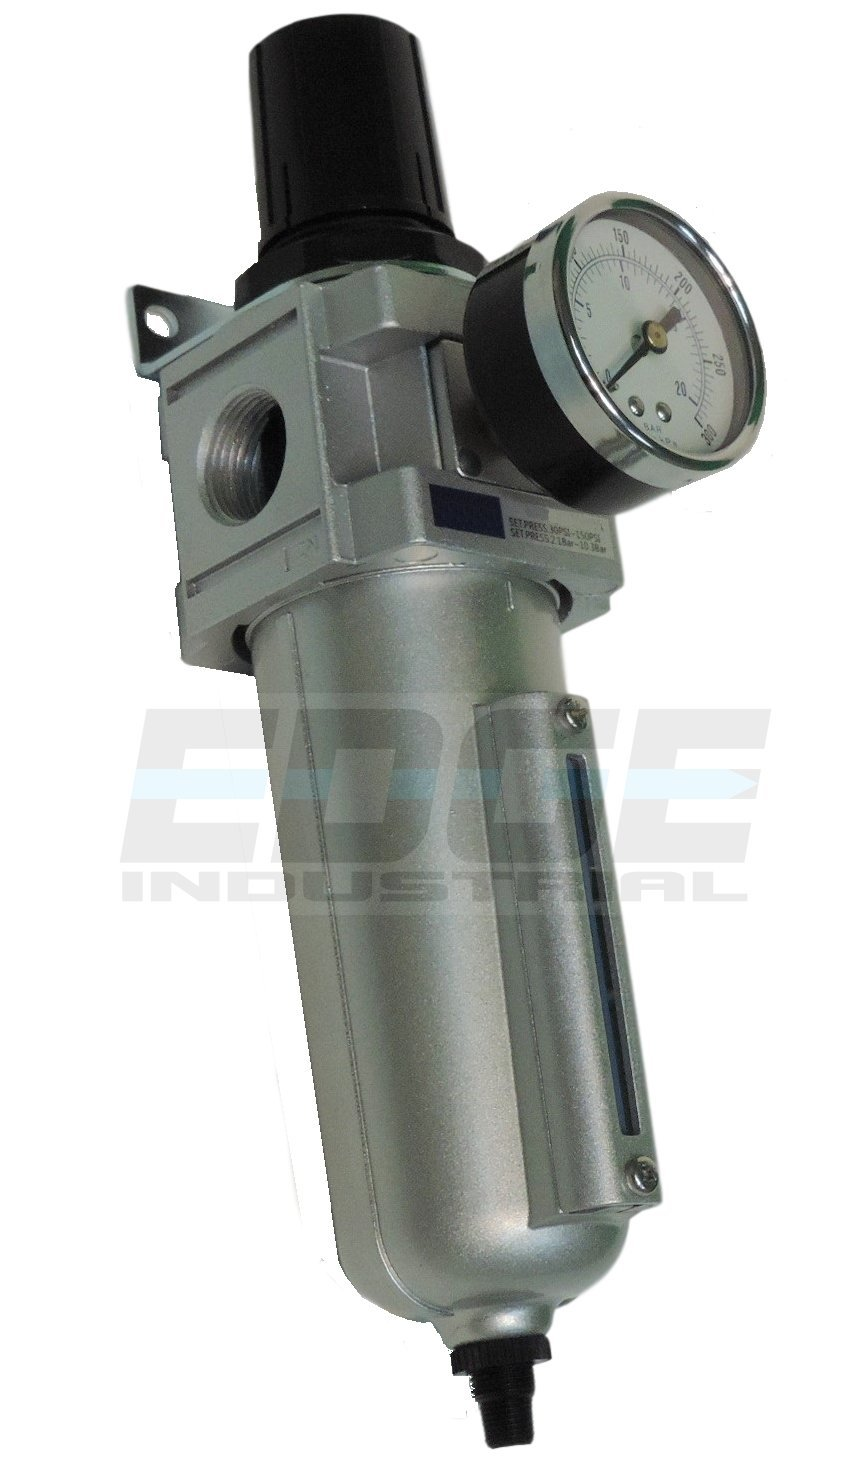 HEAVY DUTY COMPRESSED AIR FILTER REGULATOR COMBO PIGGYBACK, AUTO DRAIN, METAL BOWL, 3/4'' NPT PORTS, 140 CFM, VISIBLE SIGHT GLASS, 5 MICRON ELEMENT by T-H-B CO EDGE INDUSTRIAL